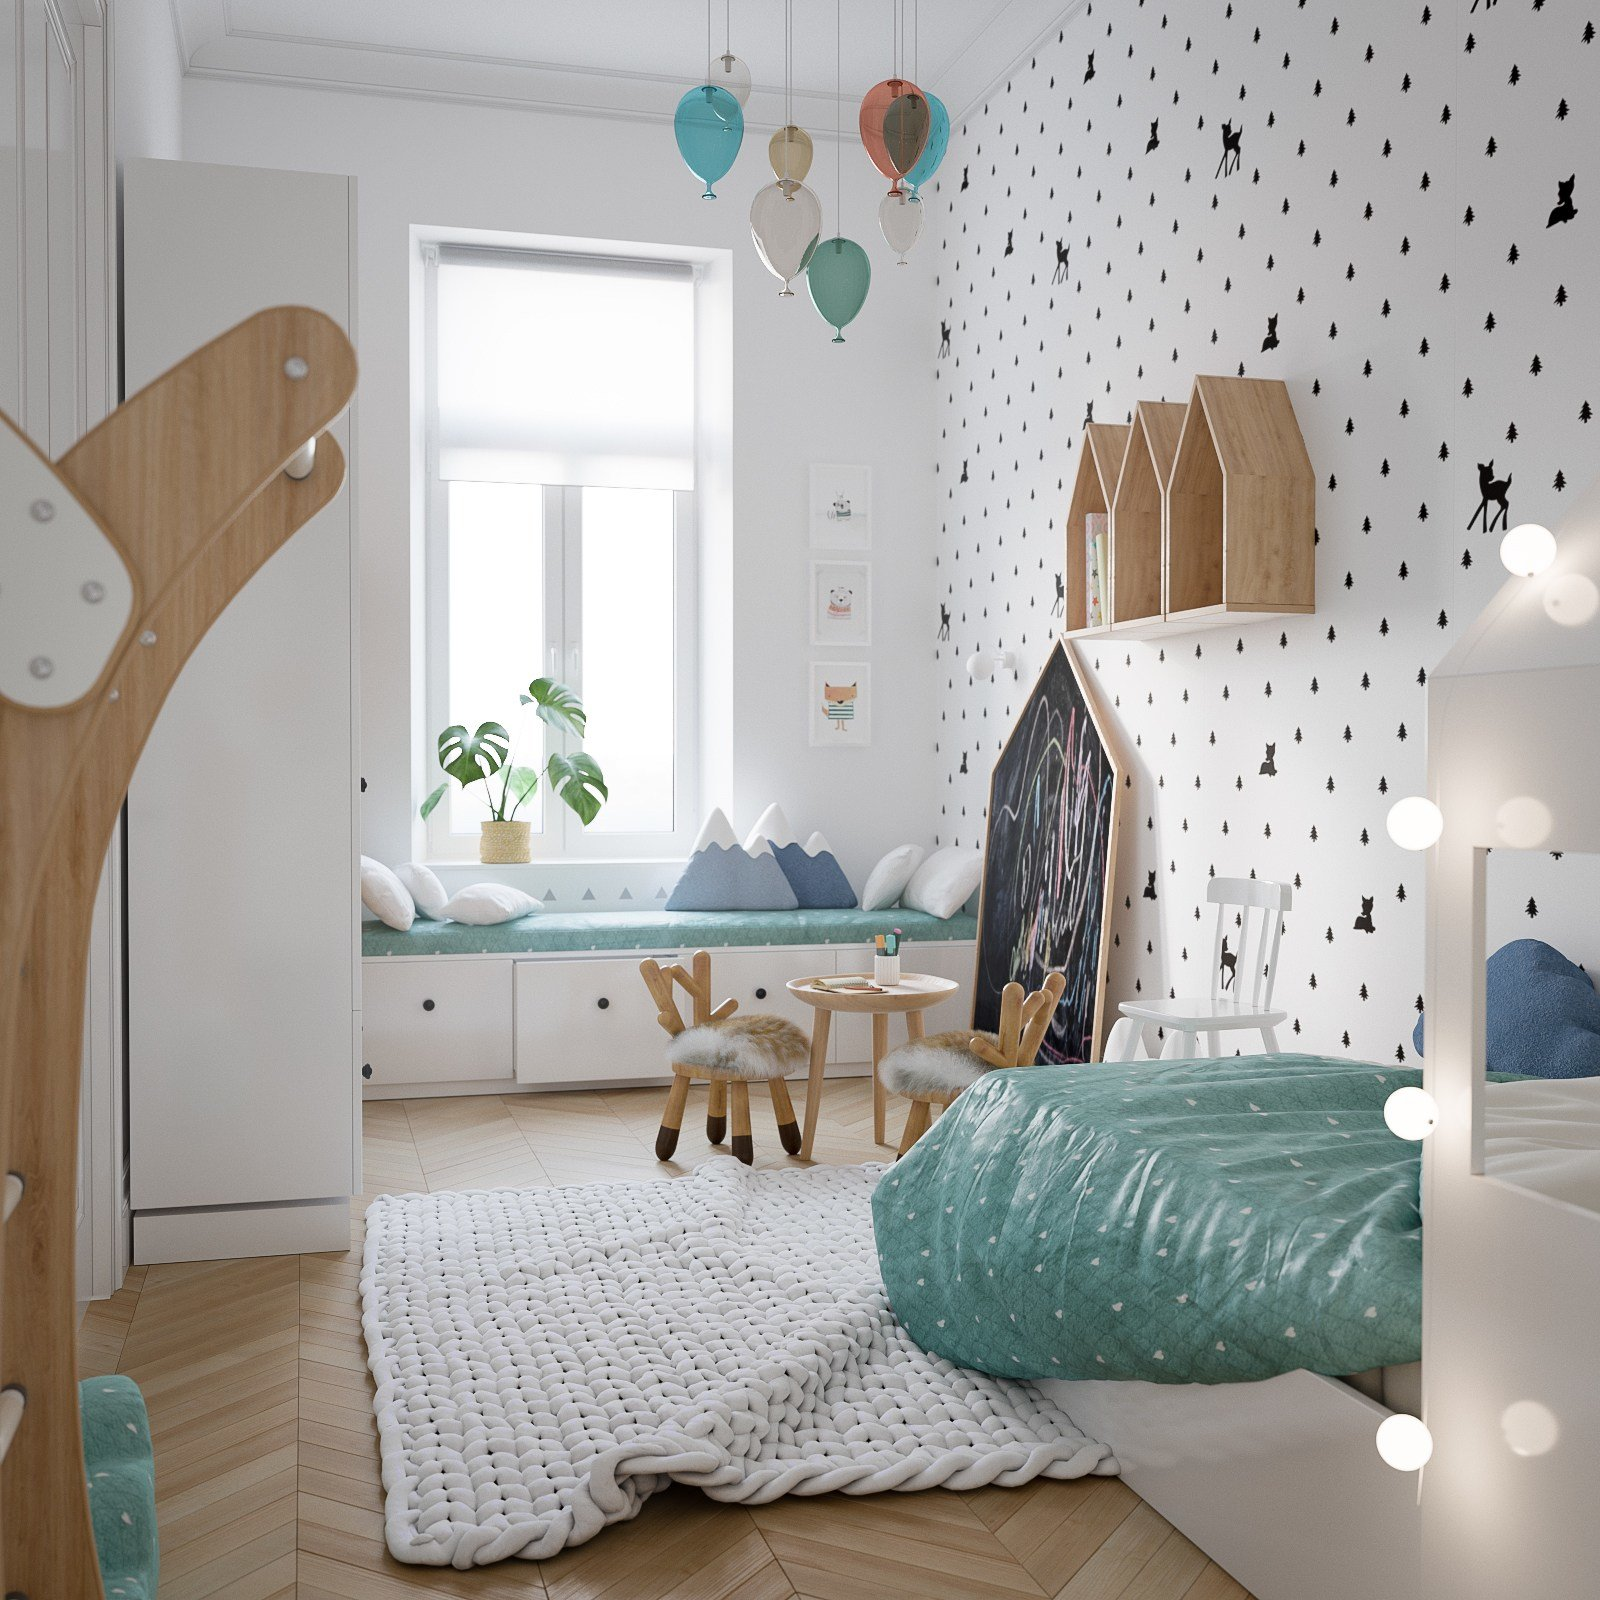 Best Modern Scandinavian Style Home Design For Young Families 2 Examples With Pictures